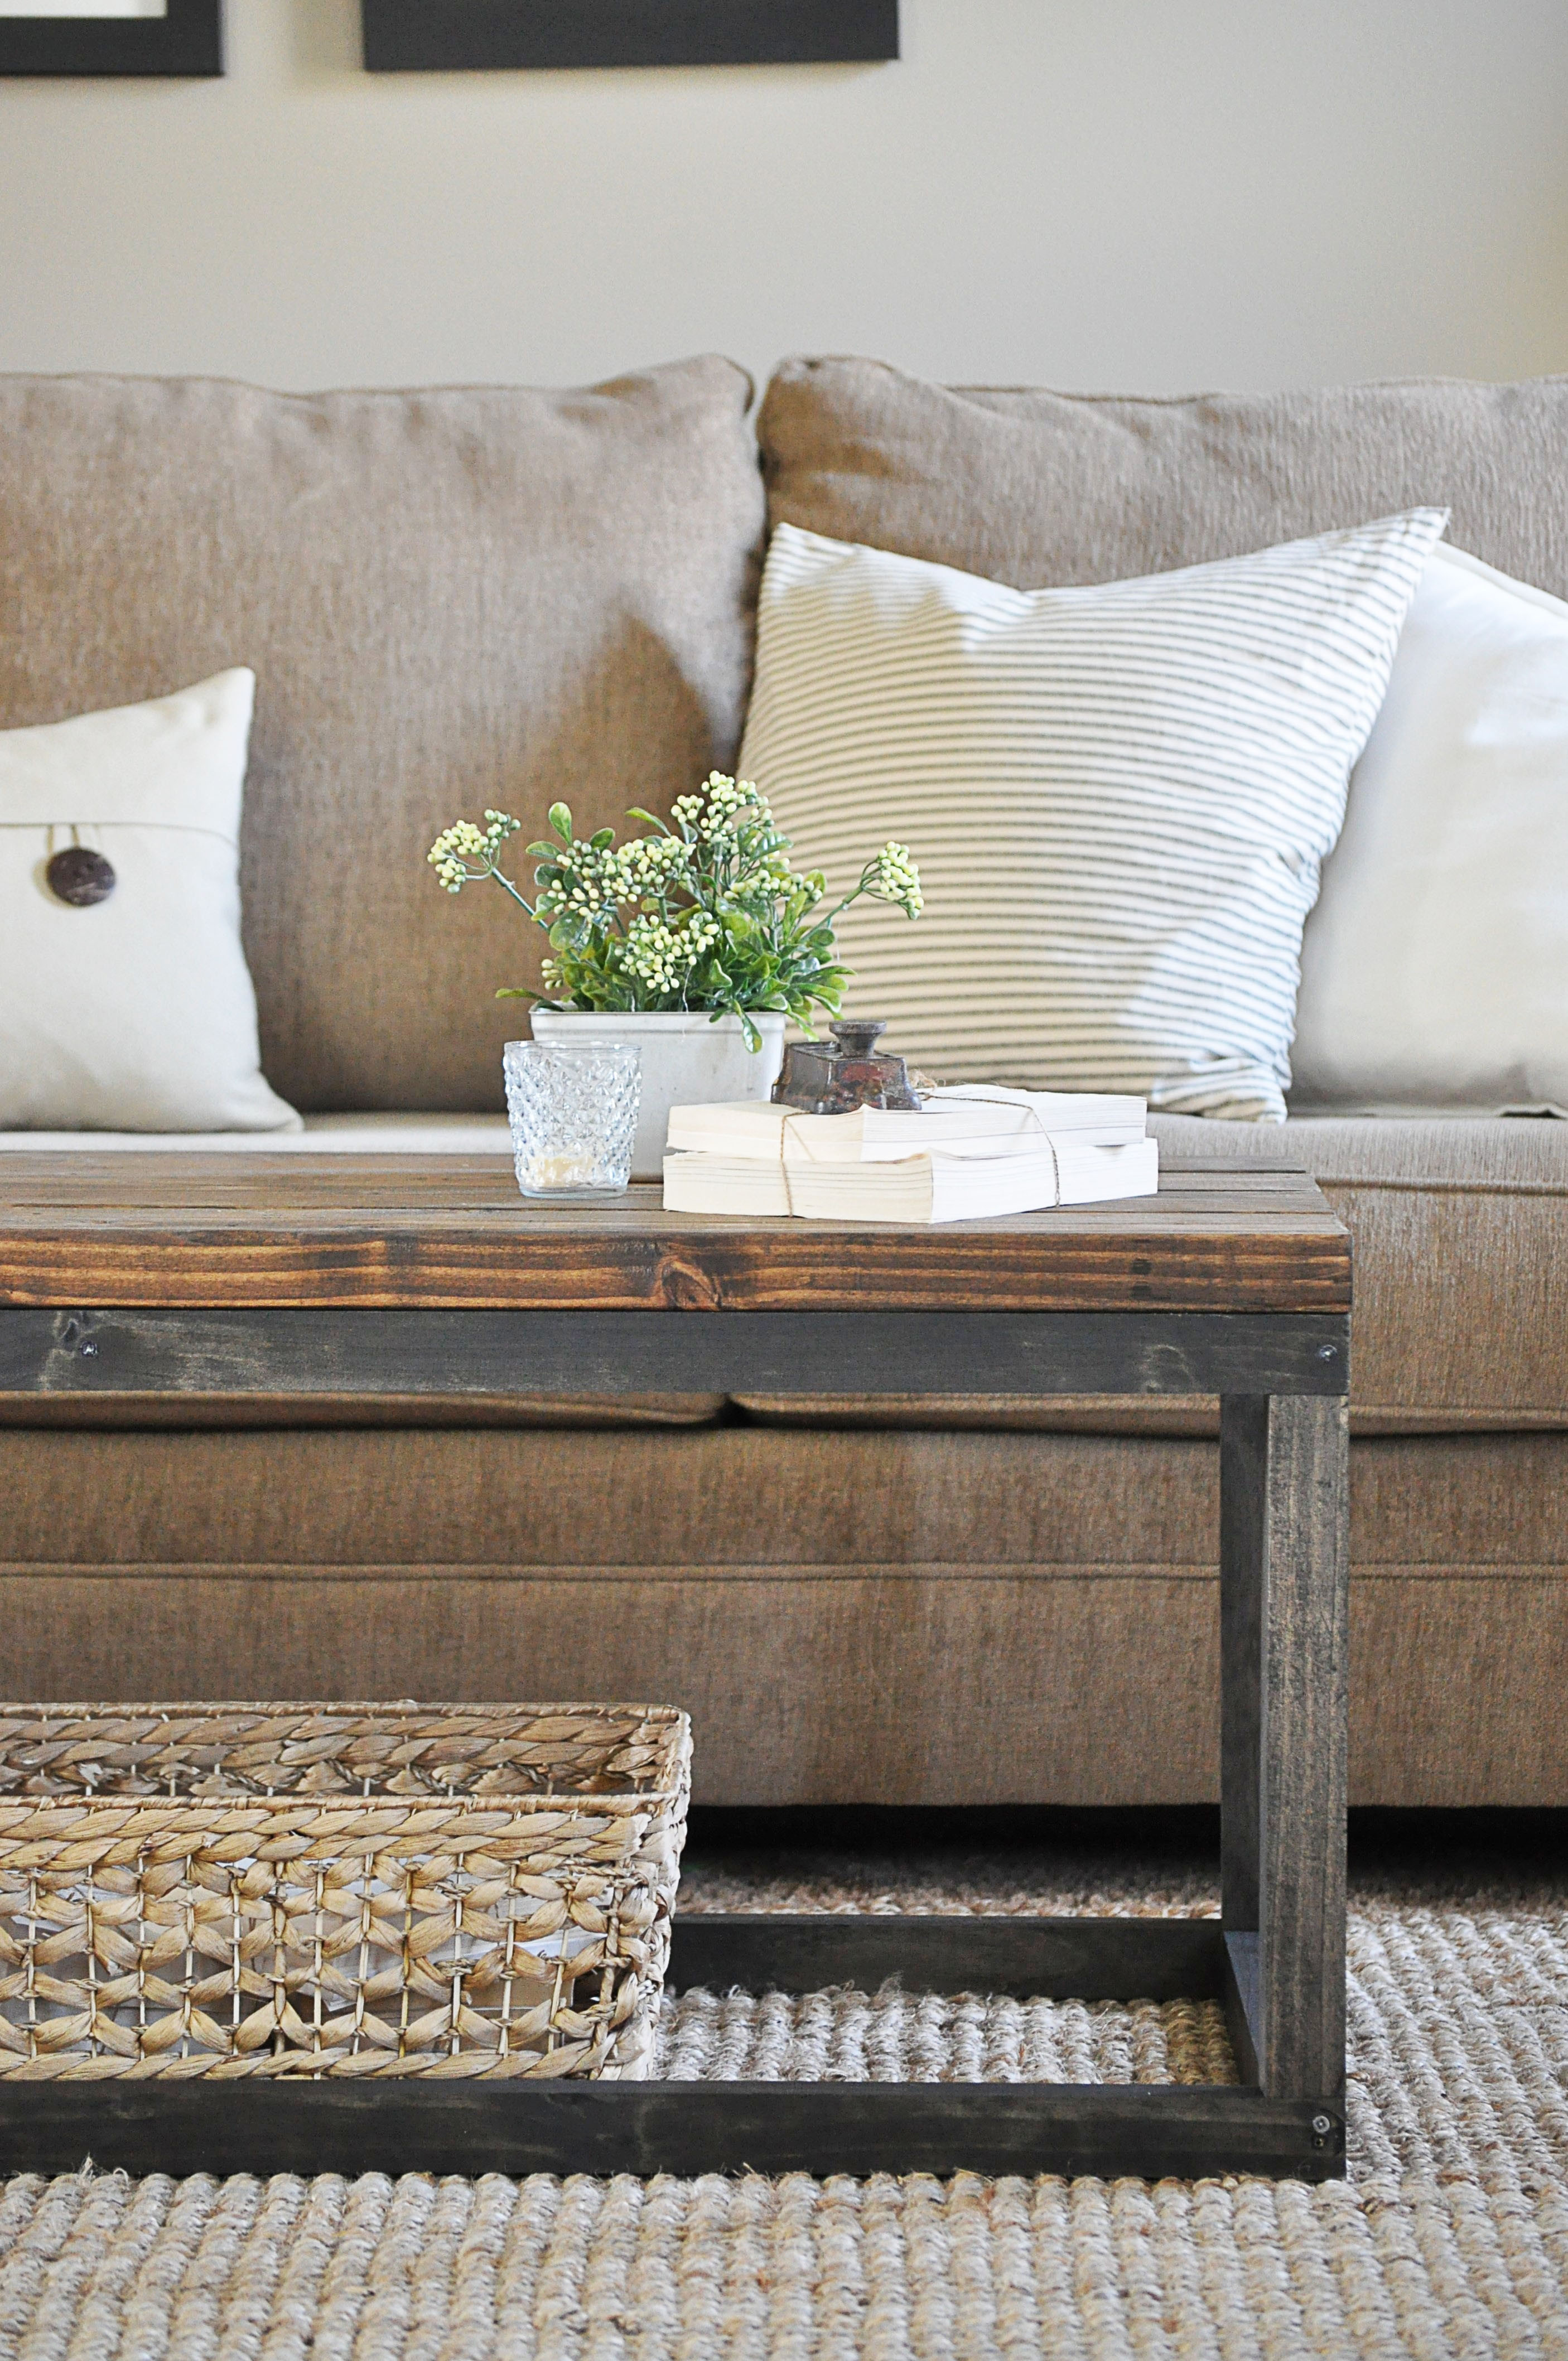 Best ideas about DIY Industrial Table . Save or Pin Industrial Coffee Table Little Glass Jar Now.